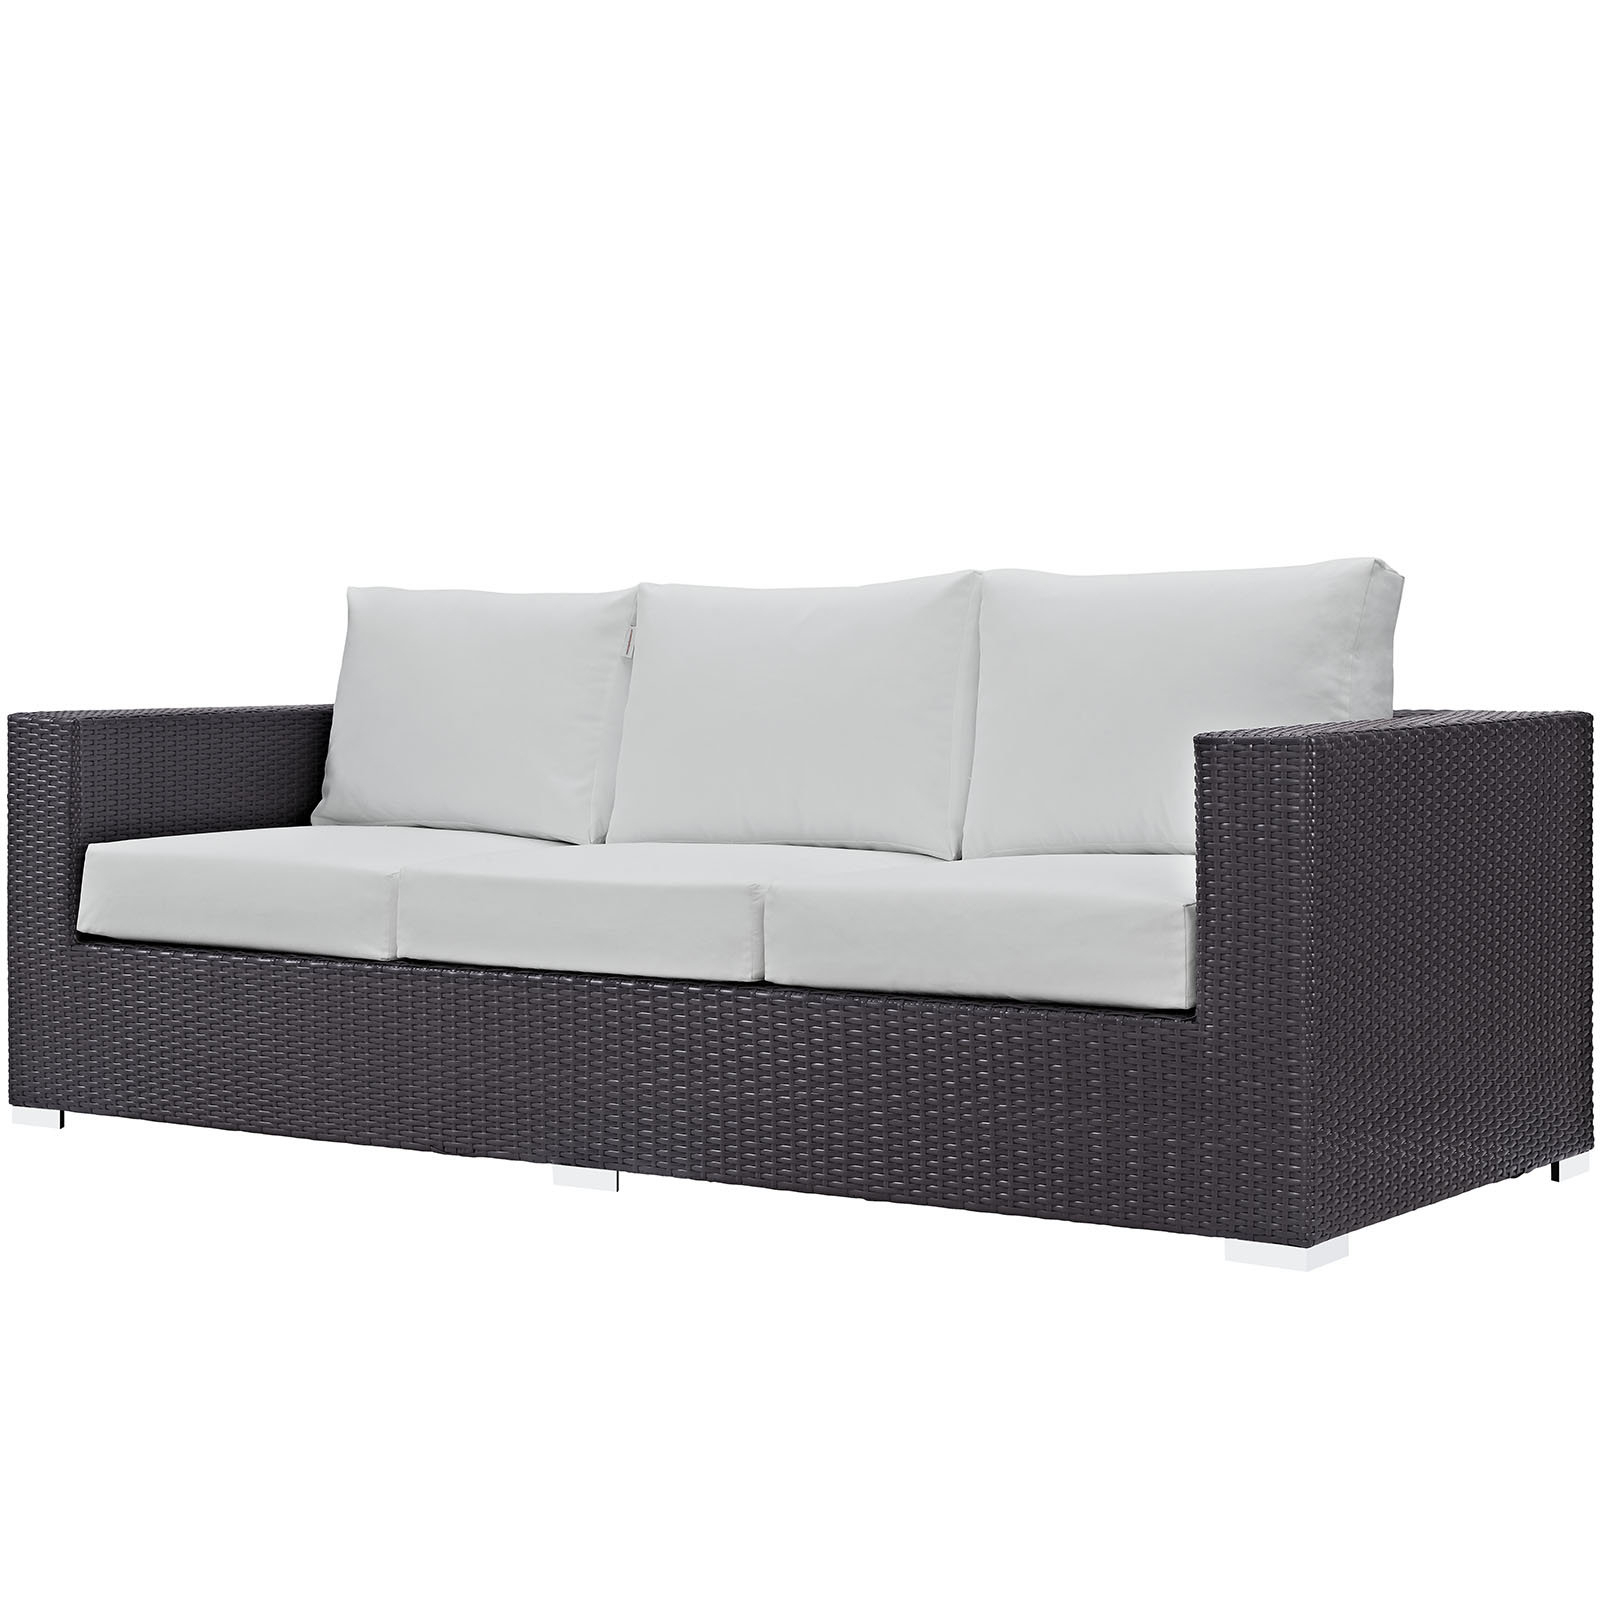 Most Recently Released Brentwood Patio Sofas With Cushions With Brentwood Patio Sofa With Cushions & Reviews (View 3 of 18)